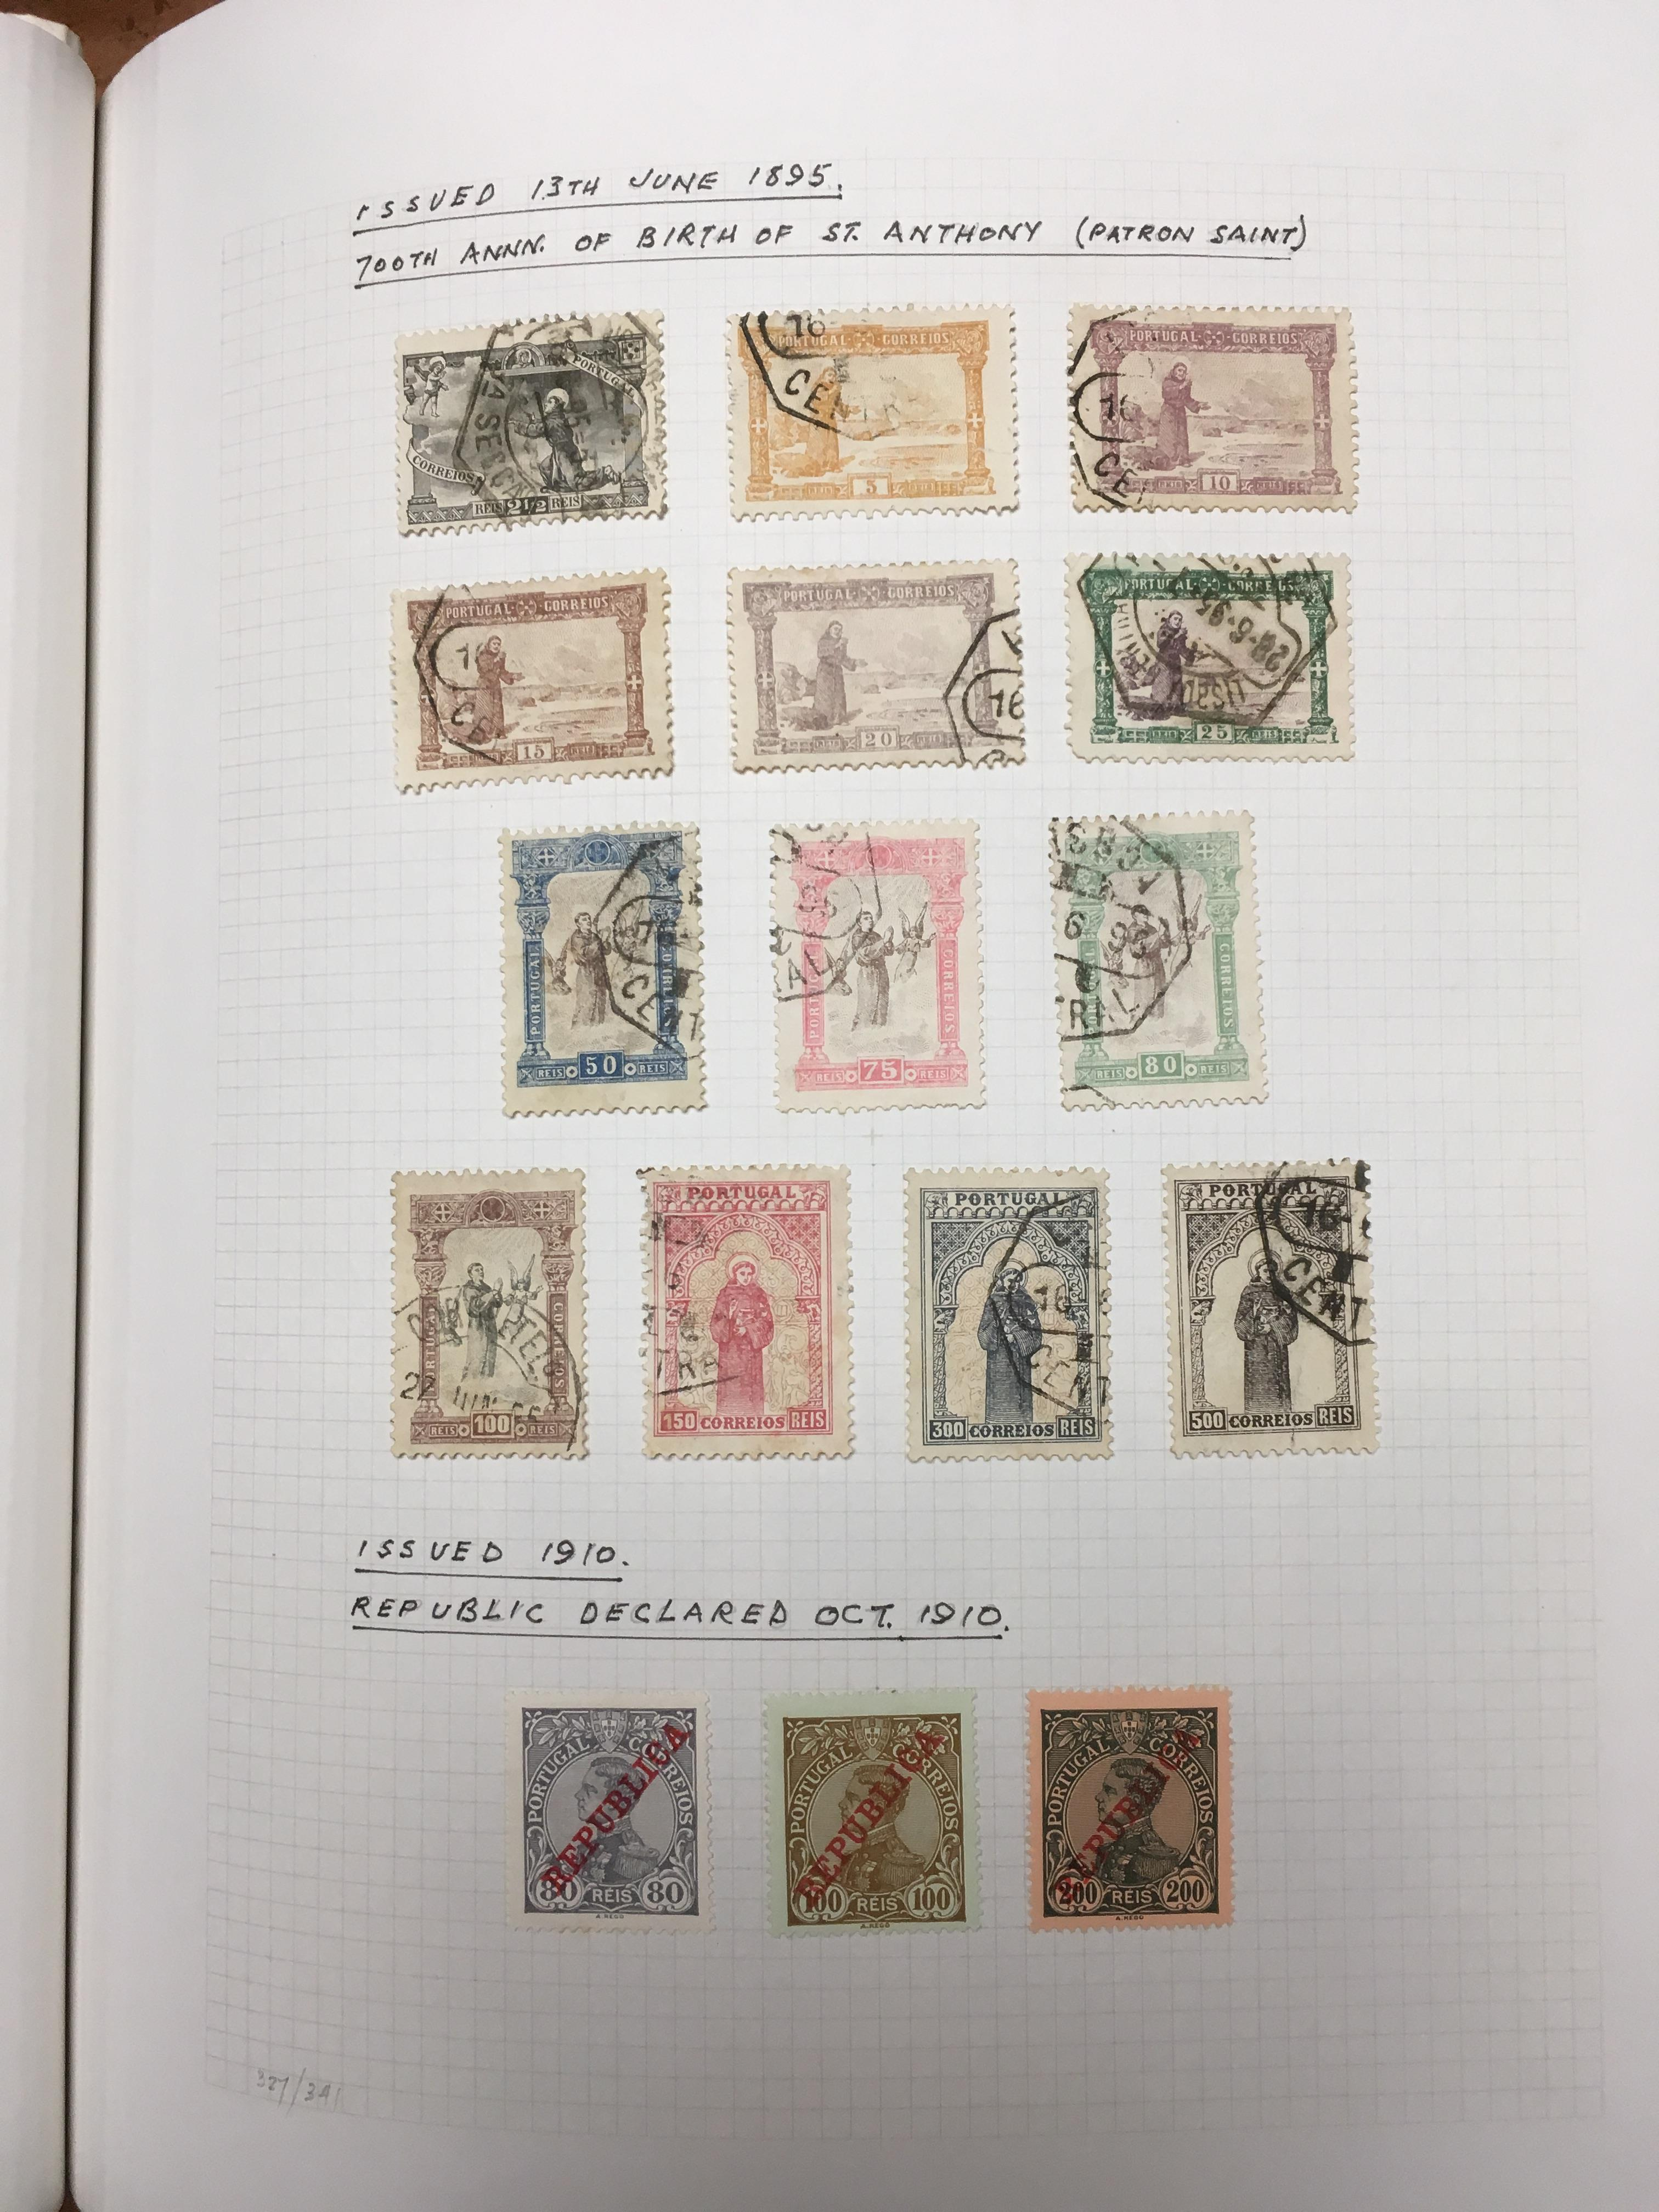 PORTUGAL: 1853-1987 MAINLY USED COLLECTI - Image 2 of 4